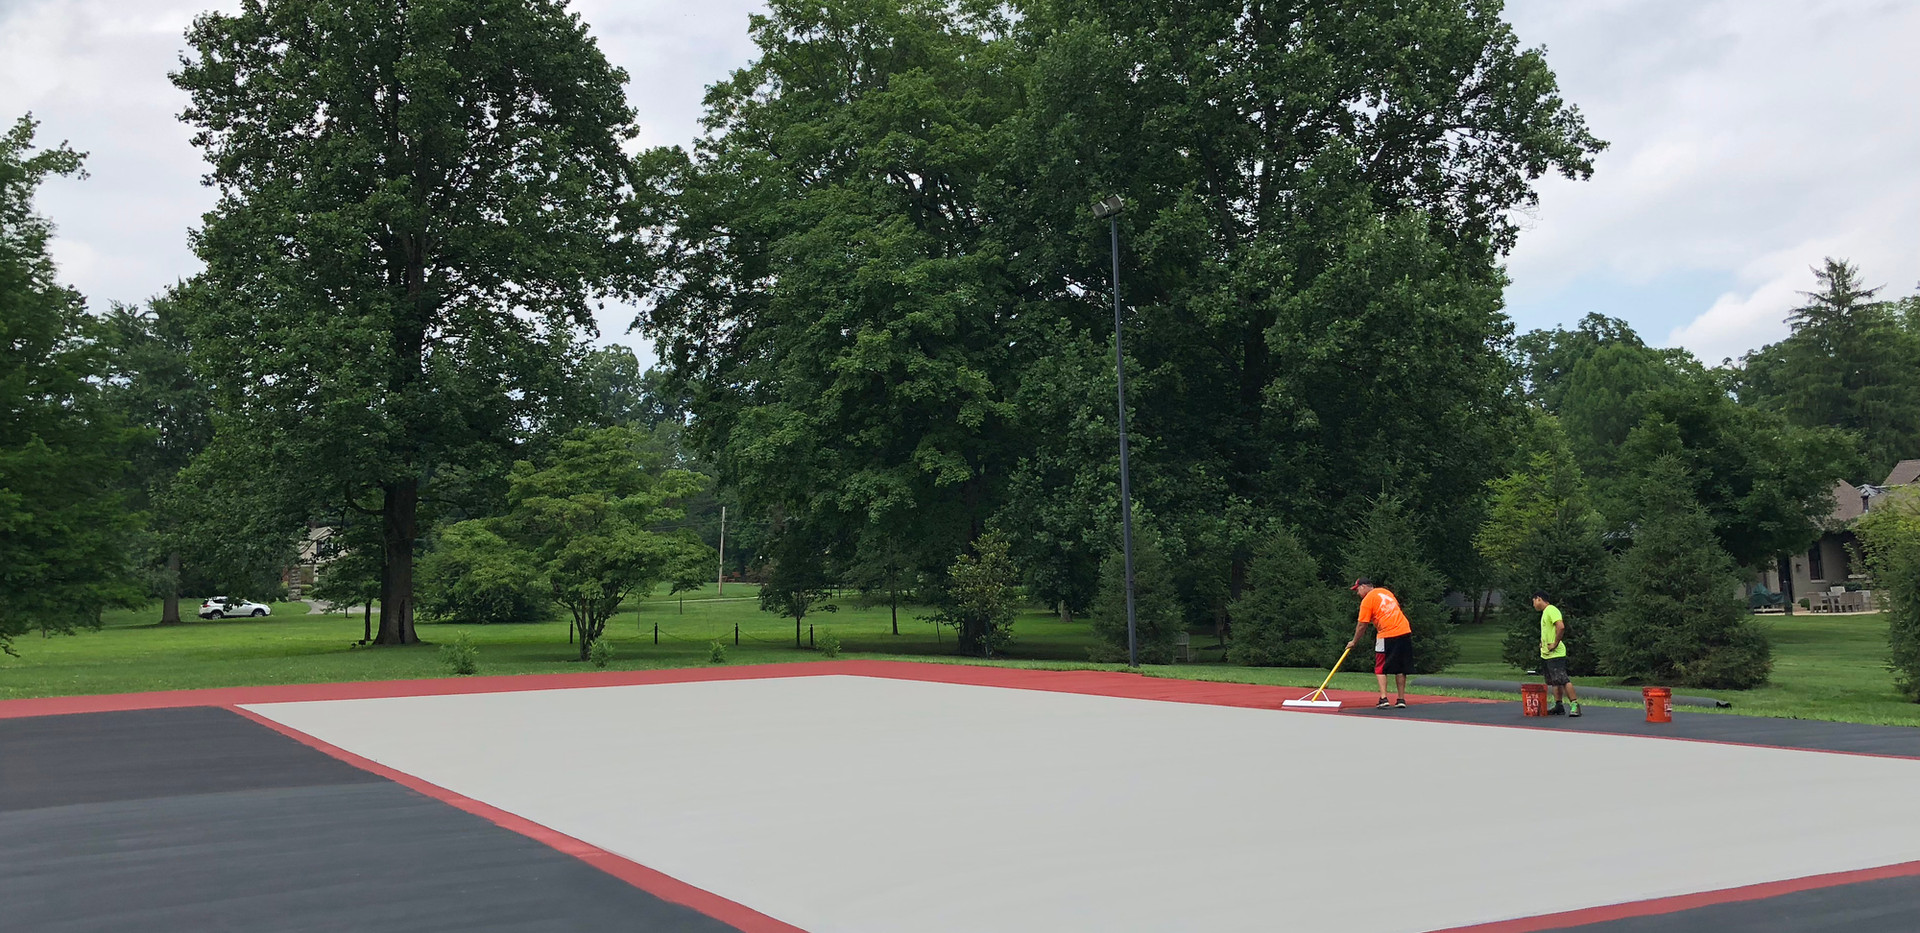 SPORTS COURT IN PROGRESS.